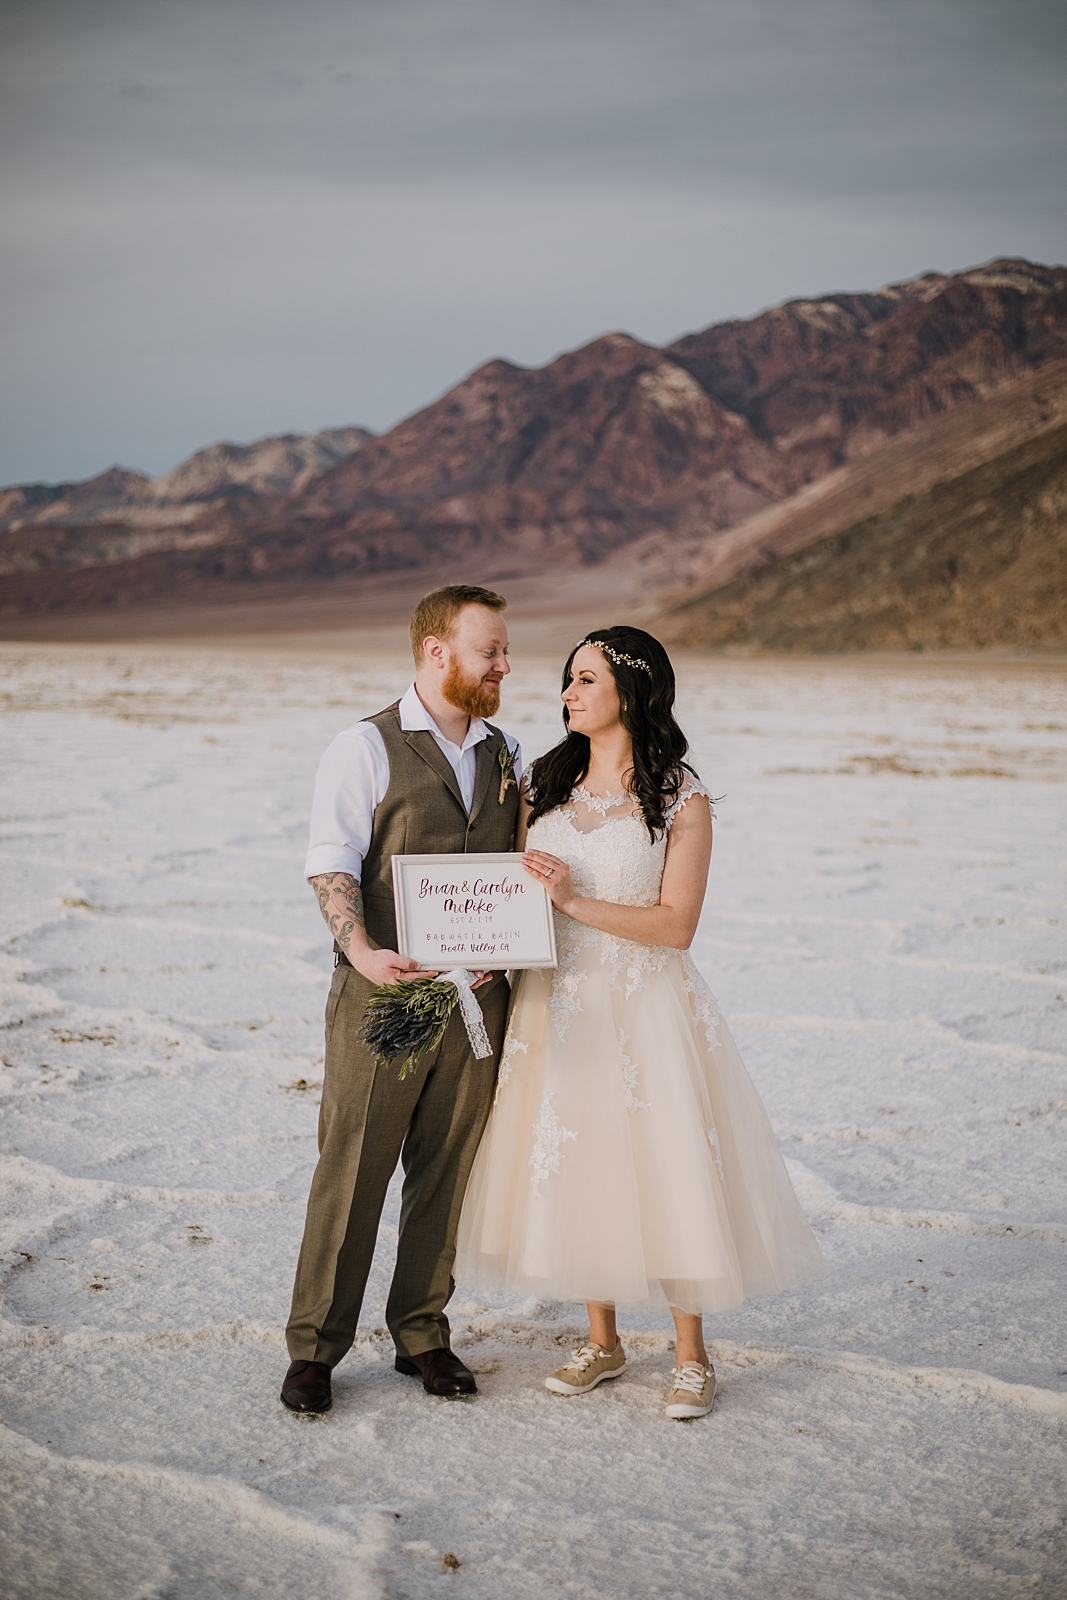 cute elopement sign, death valley national park elopement, elope in death valley, badwater basin elopement, hiking in death valley national park, sunset at badwater basin